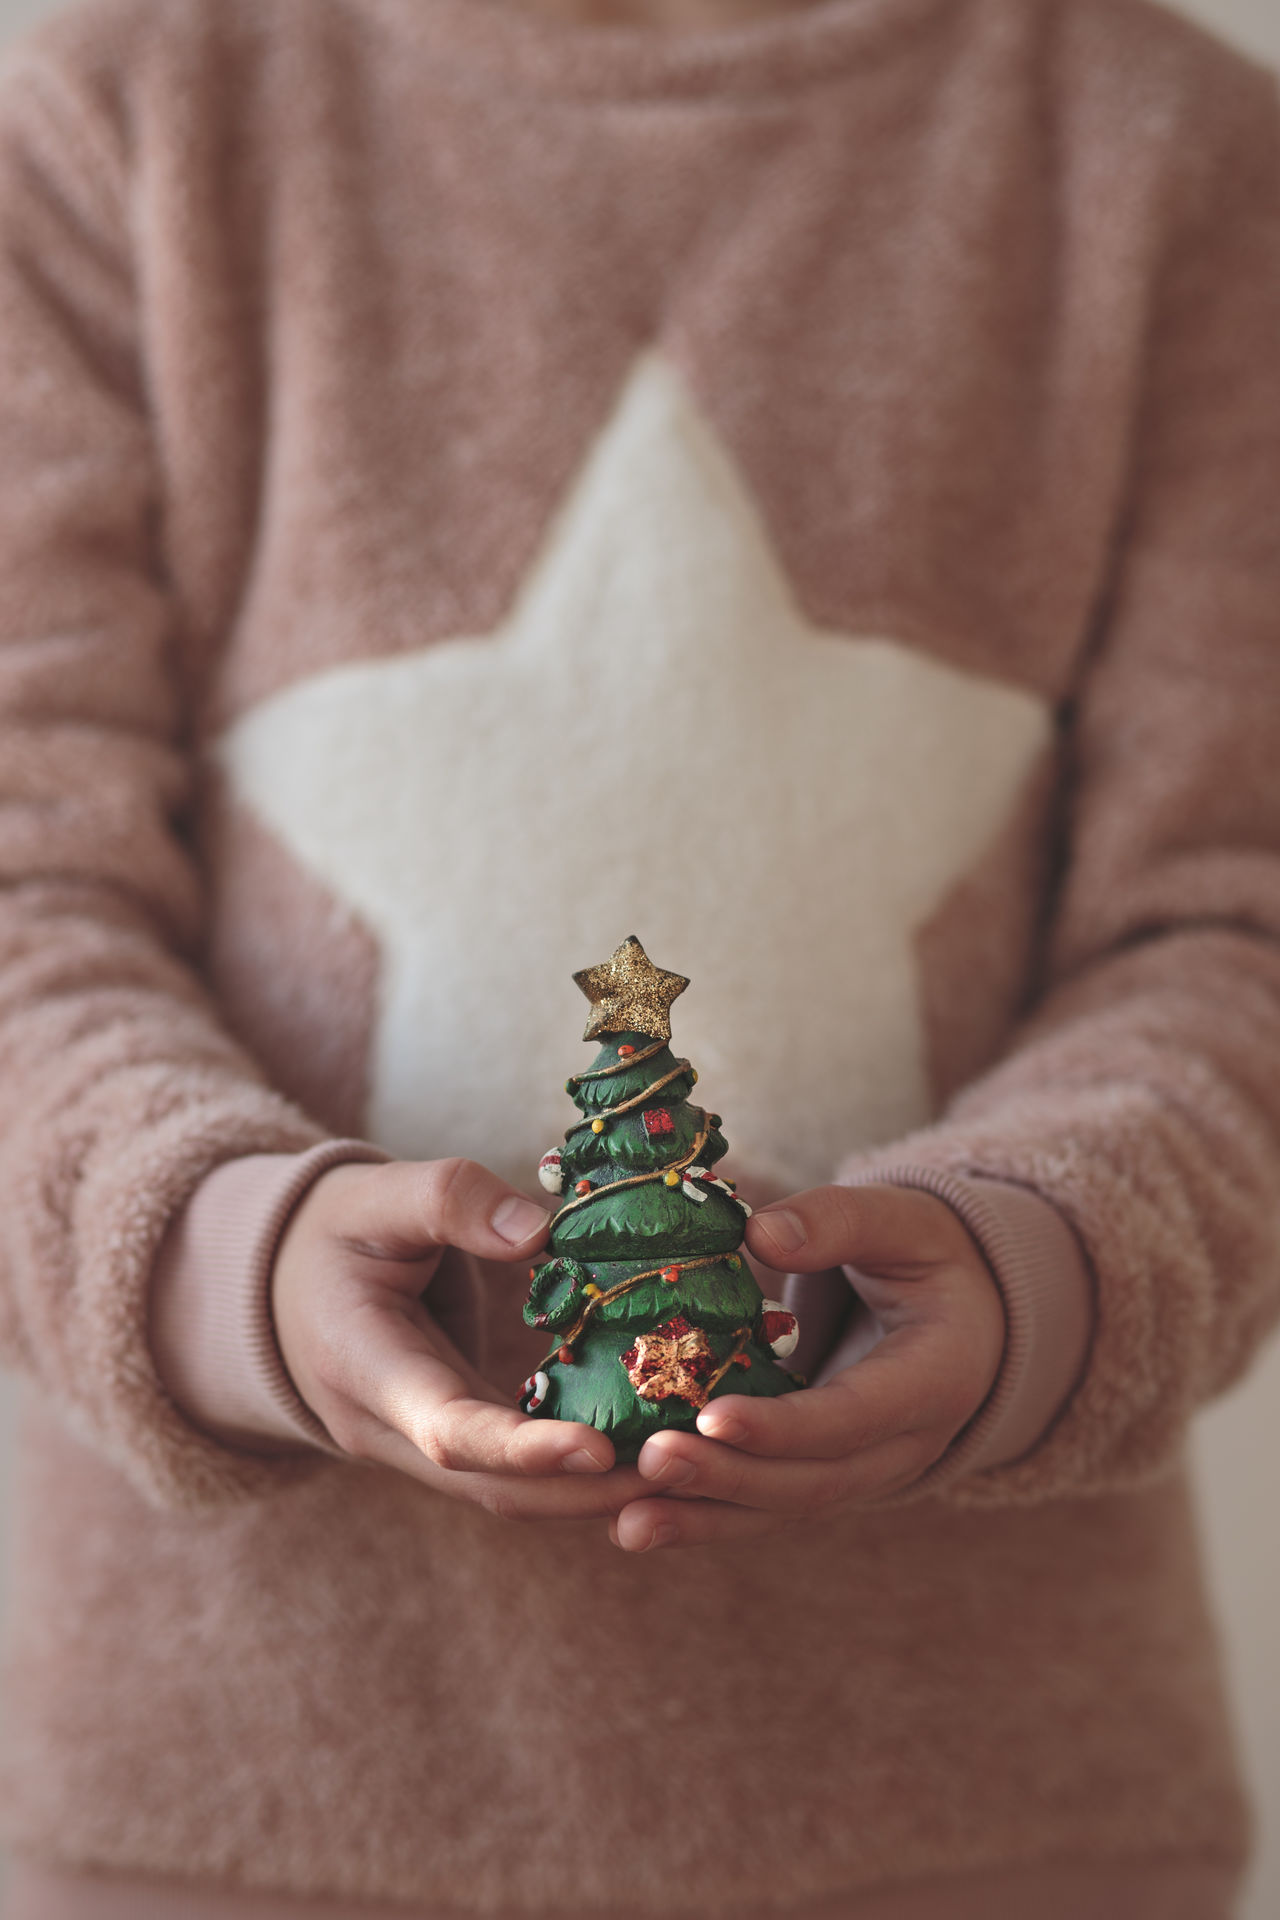 Girl wearing warm sweater holding Christmas tree figure Anonymous Celebration Childhood Christmas Christmastime Close-up Decoration Figure Girl Holding Holiday Idea Lifestyles One Person Simple Sweater Tradition Tree Vertical